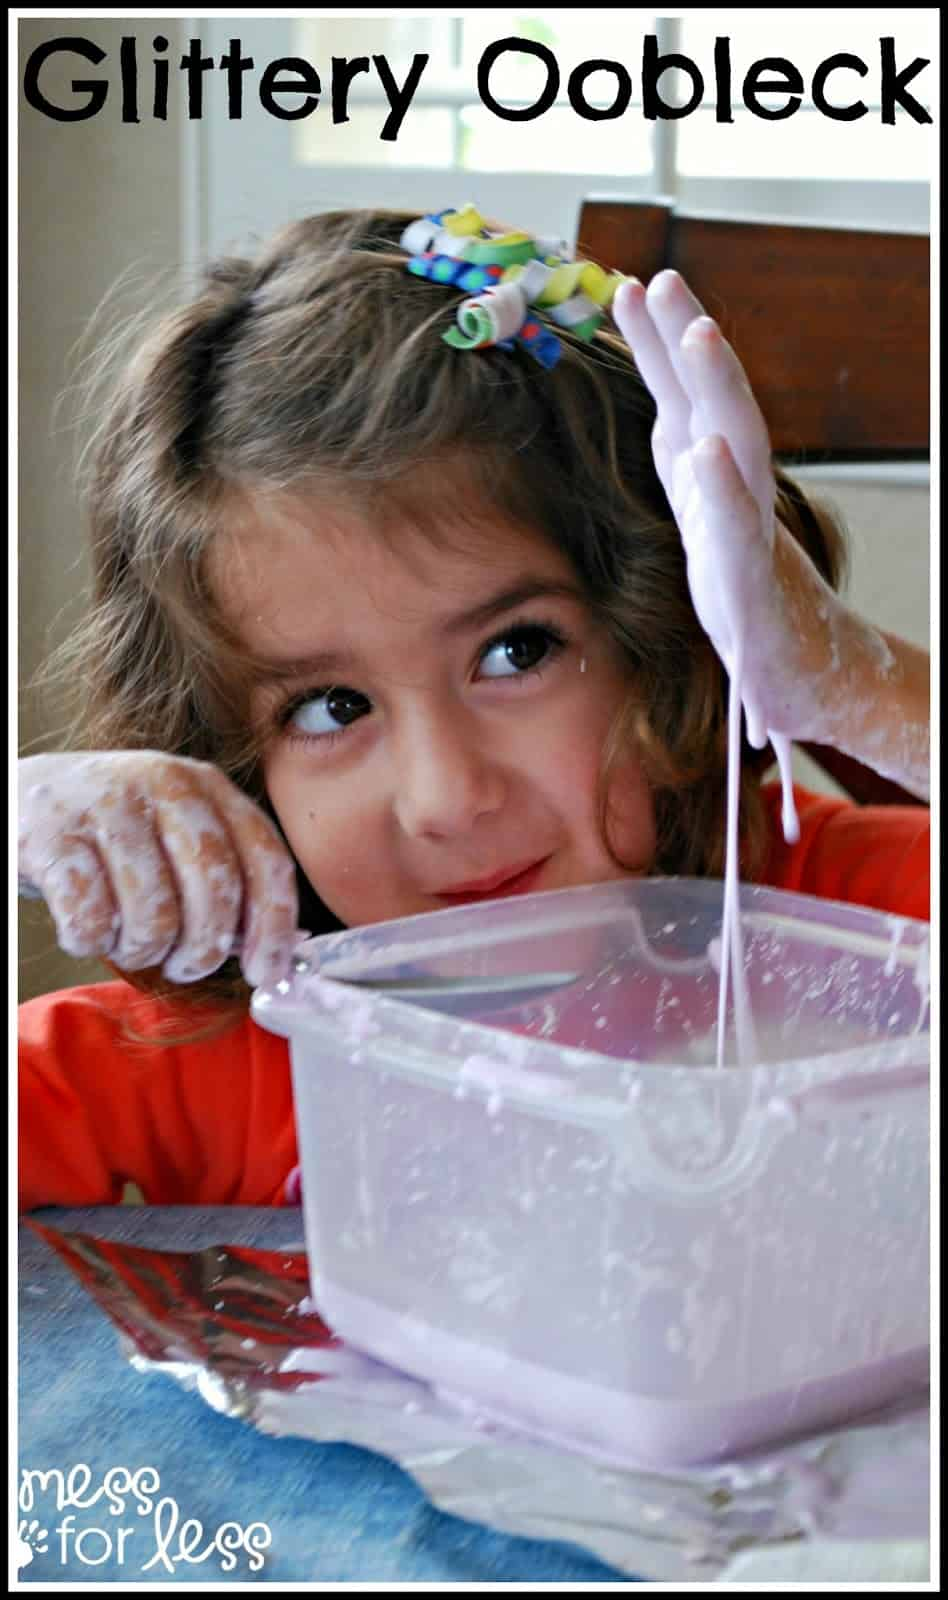 Glitter Oobleck Recipe  A Few Simple Ingredients Needed To Make This Fun  Slime That Kids